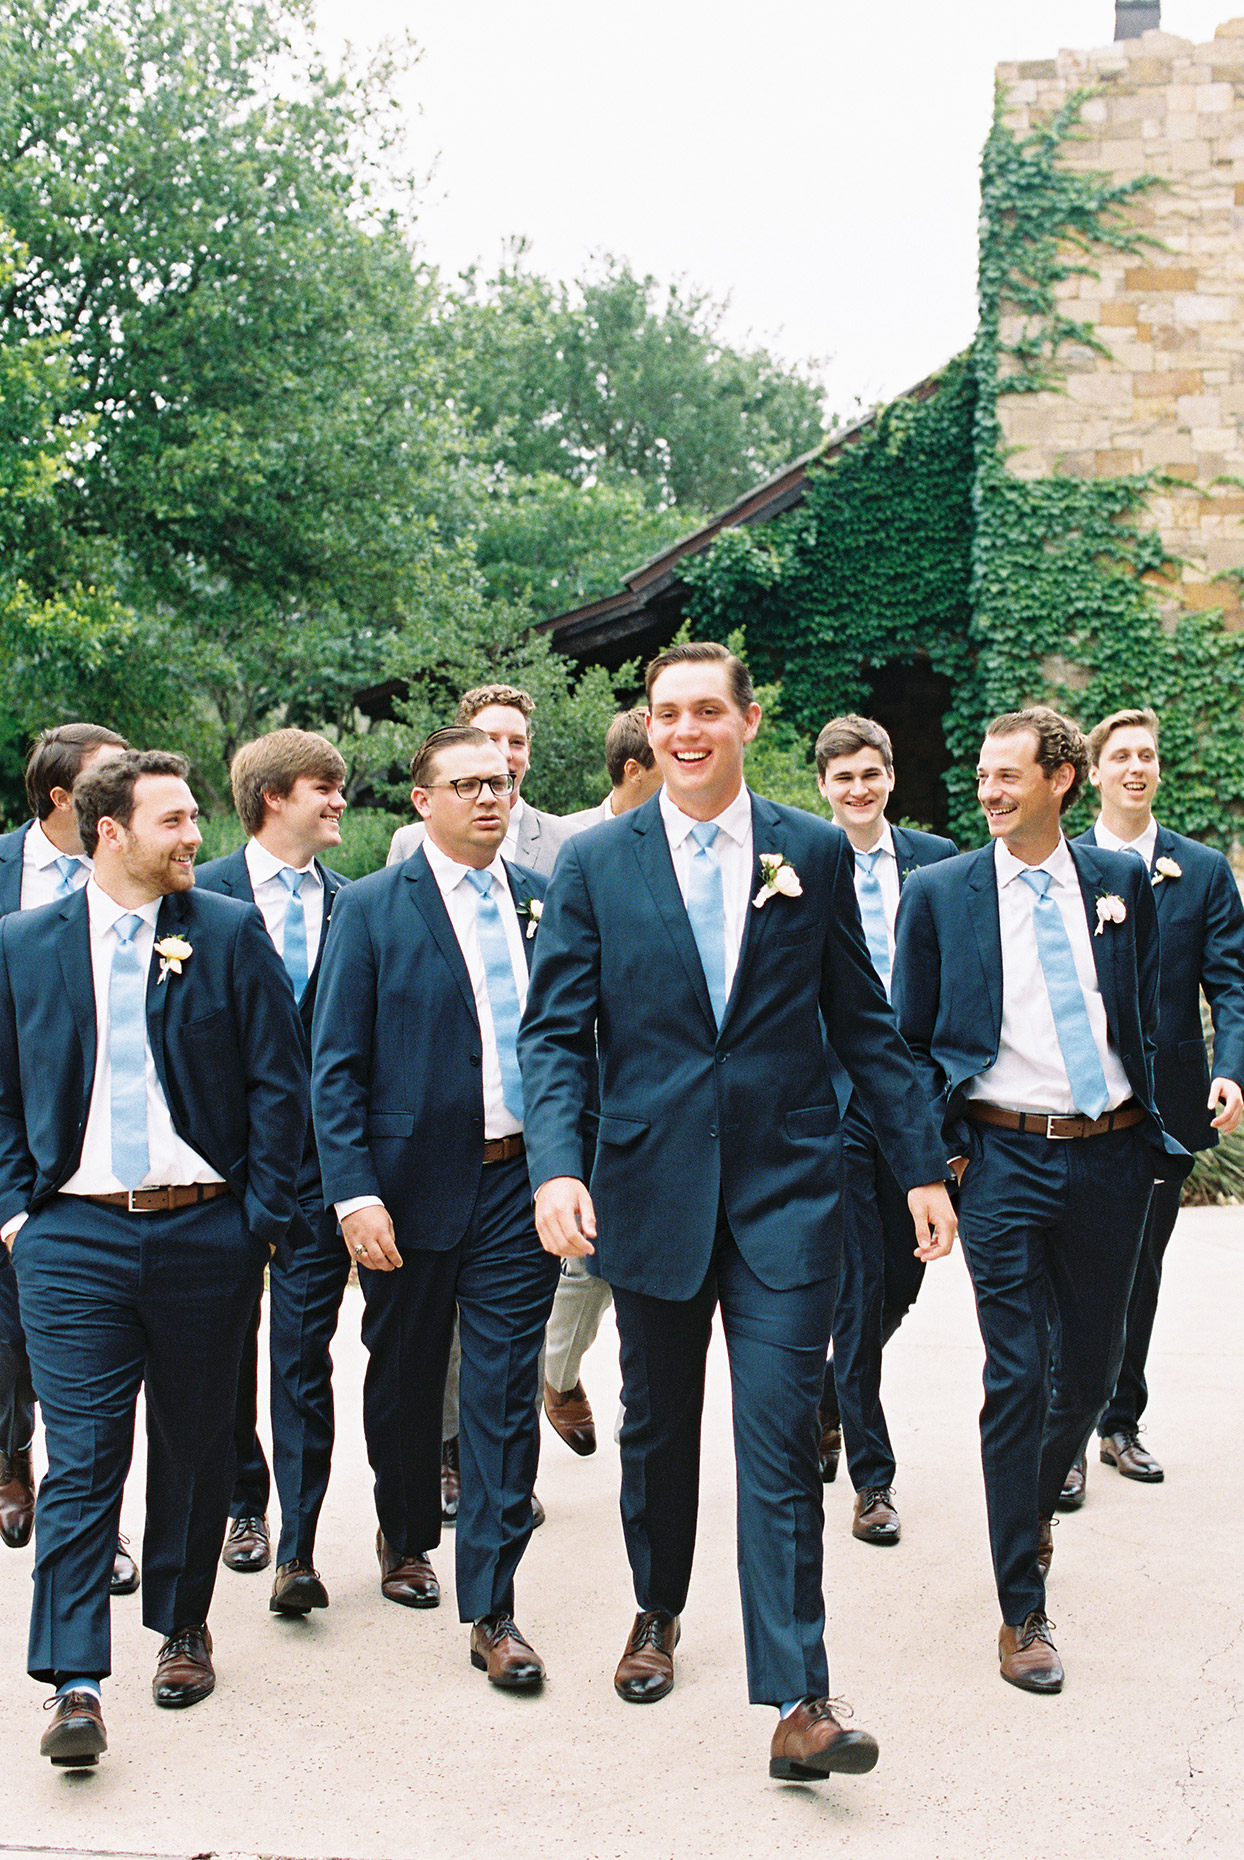 groom walking with groomsmen wearing matching blue suits